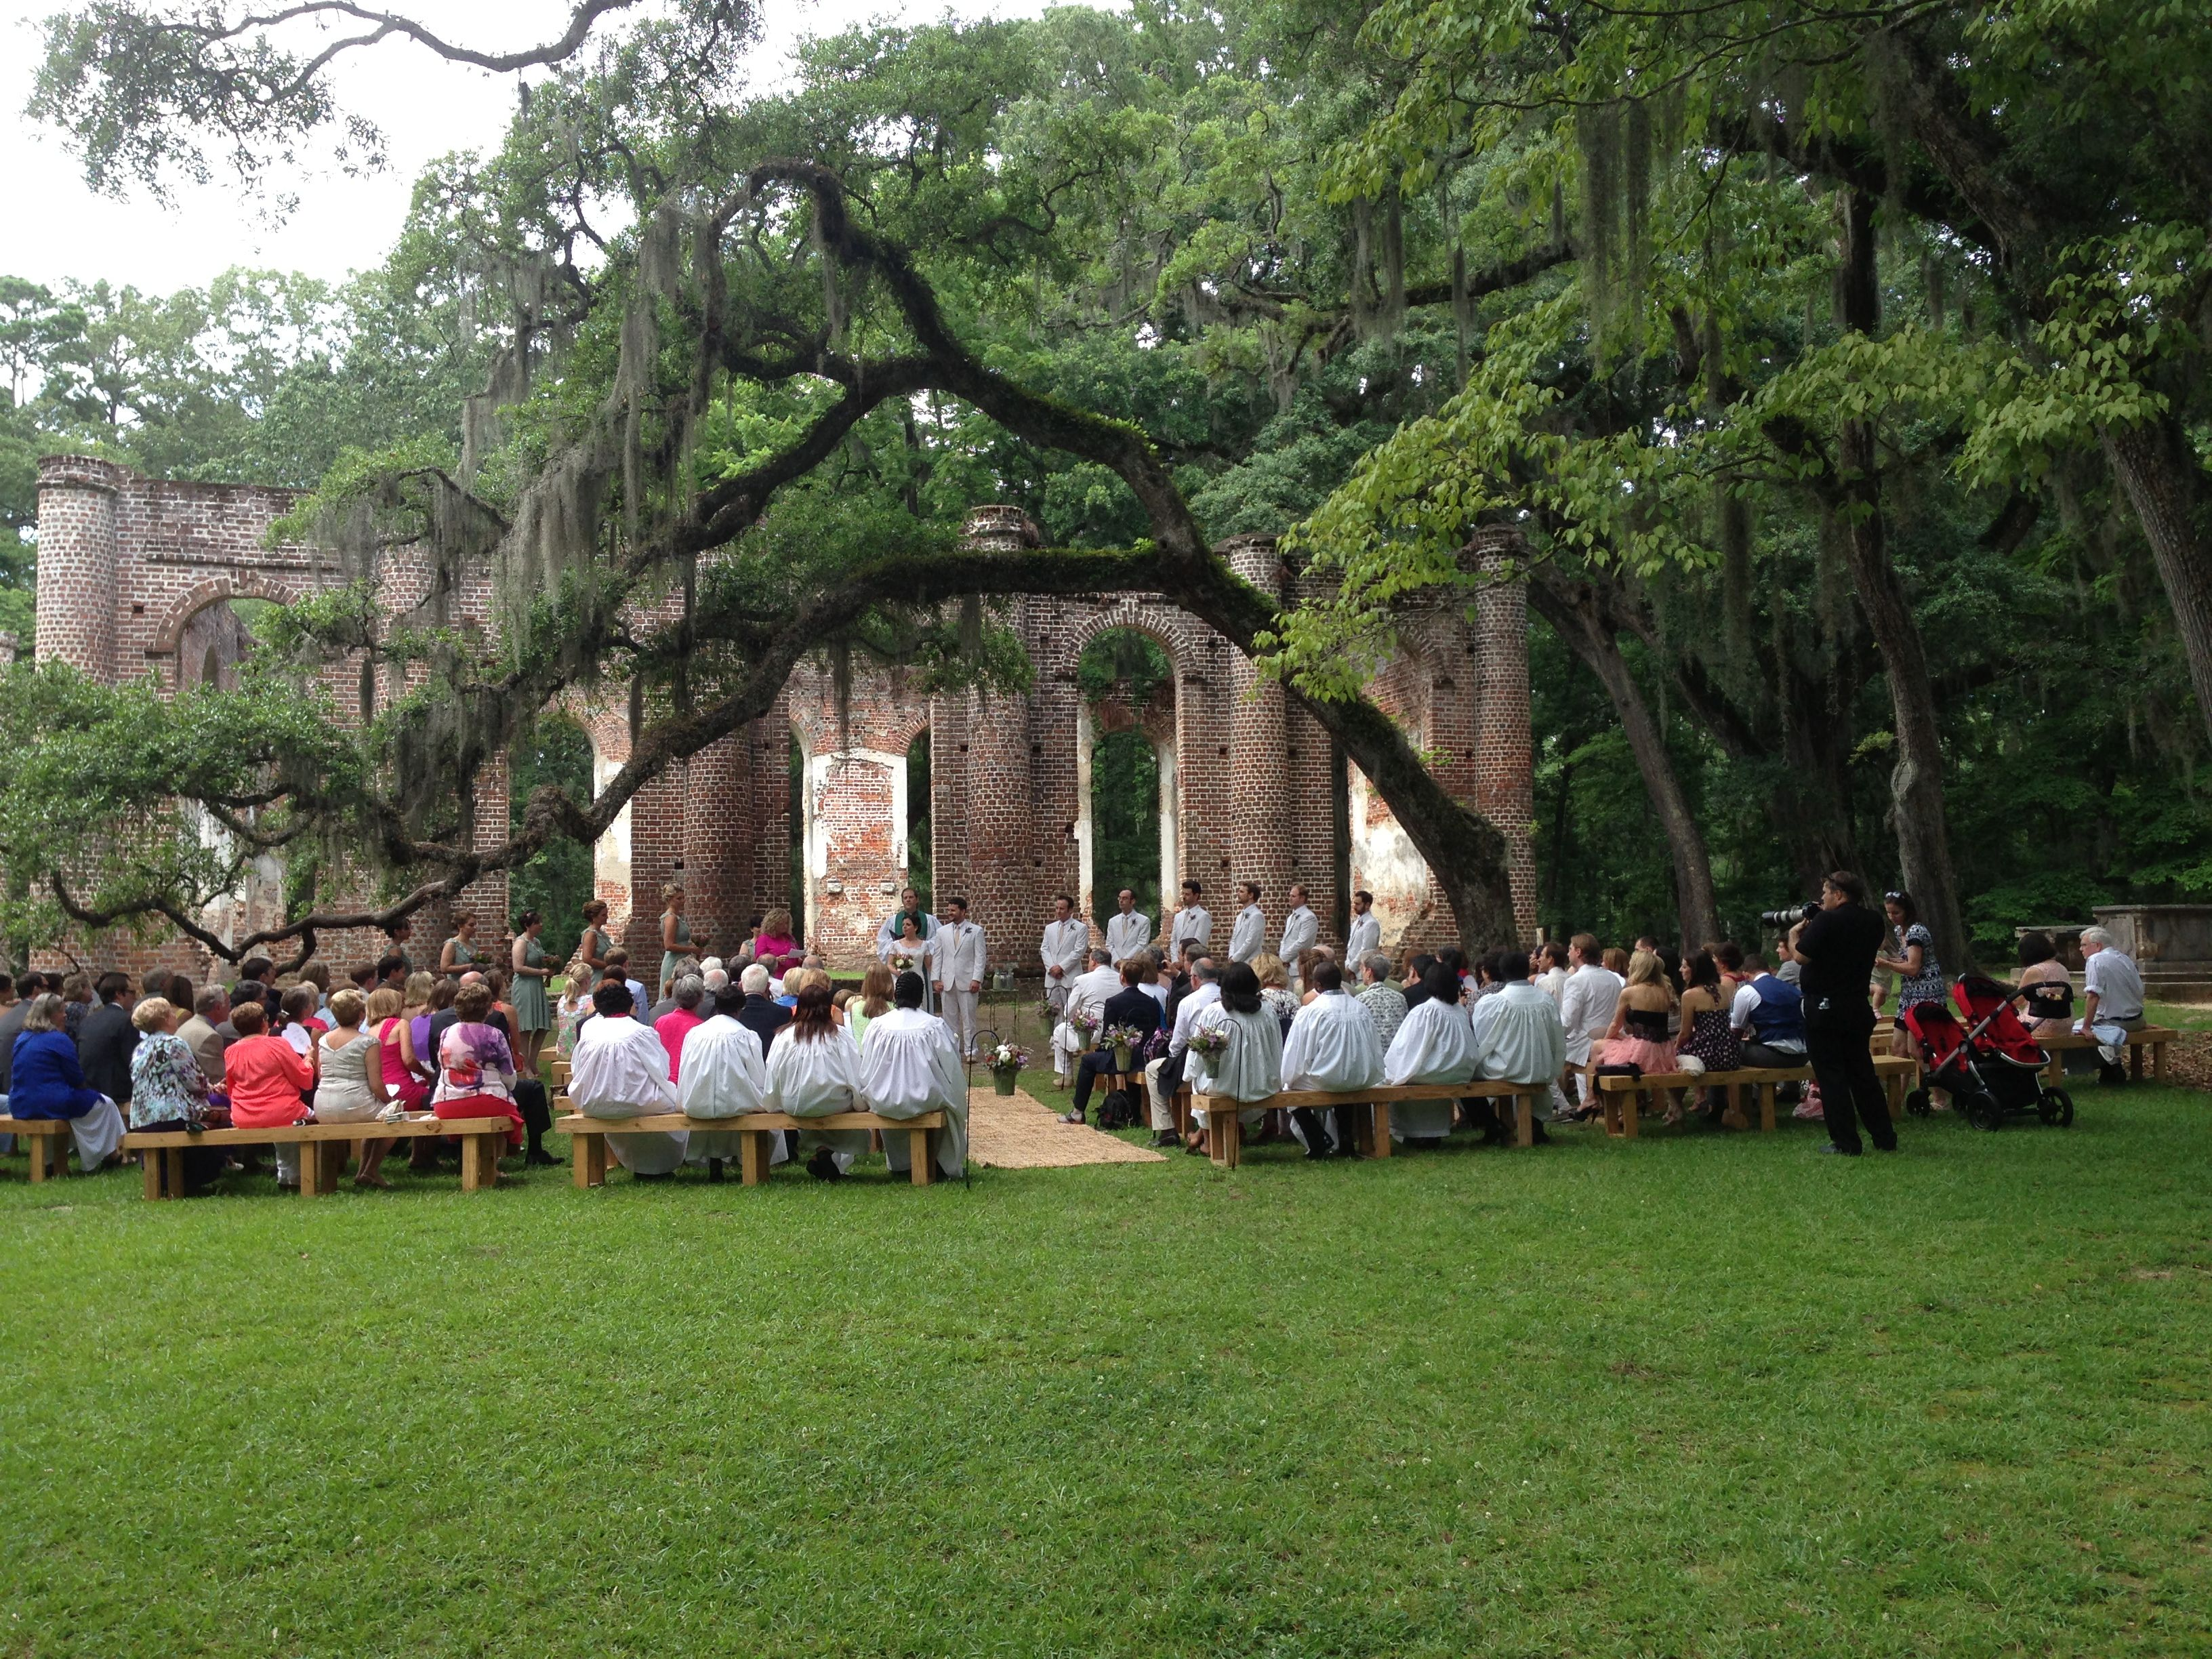 Old Sheldon Church Ruins A Perfect Southern Wedding Venue When The One Comes Along Pinterest Weddings Churches And Venues